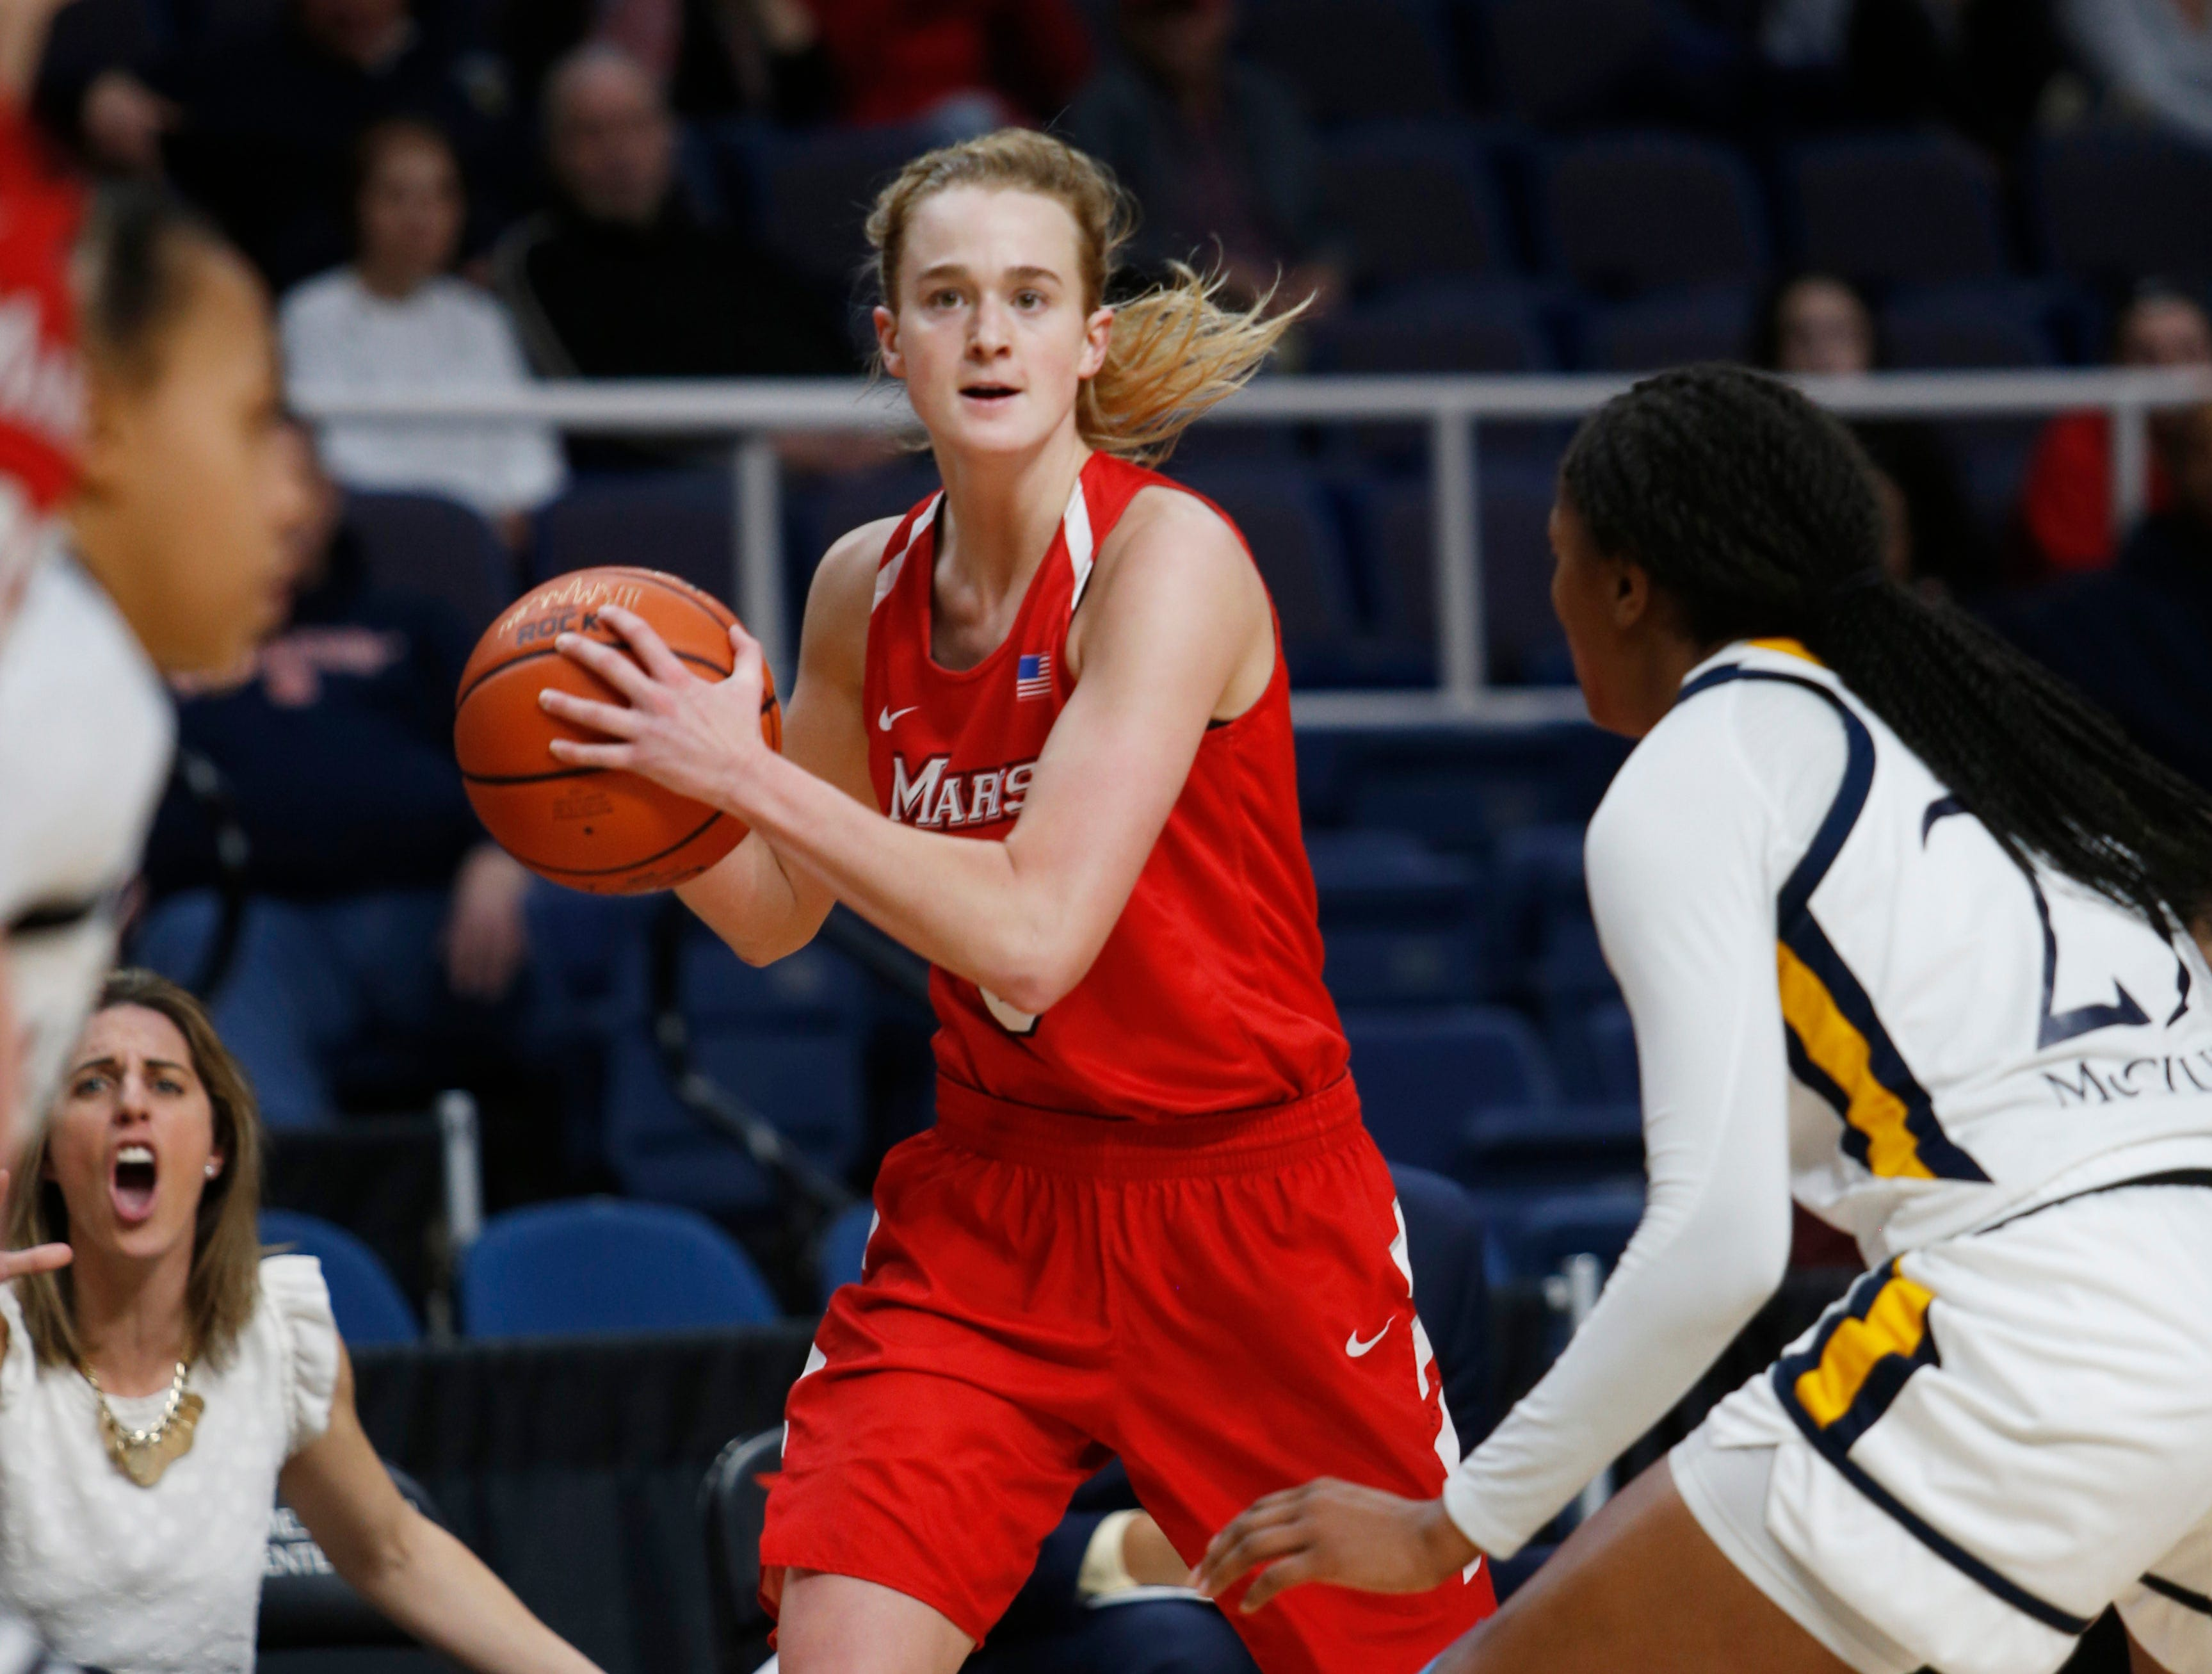 Action from the MAAC women's basketball championship between Marist College and Quinnipiac University at the Times Union Center in Albany on March 11 2019.